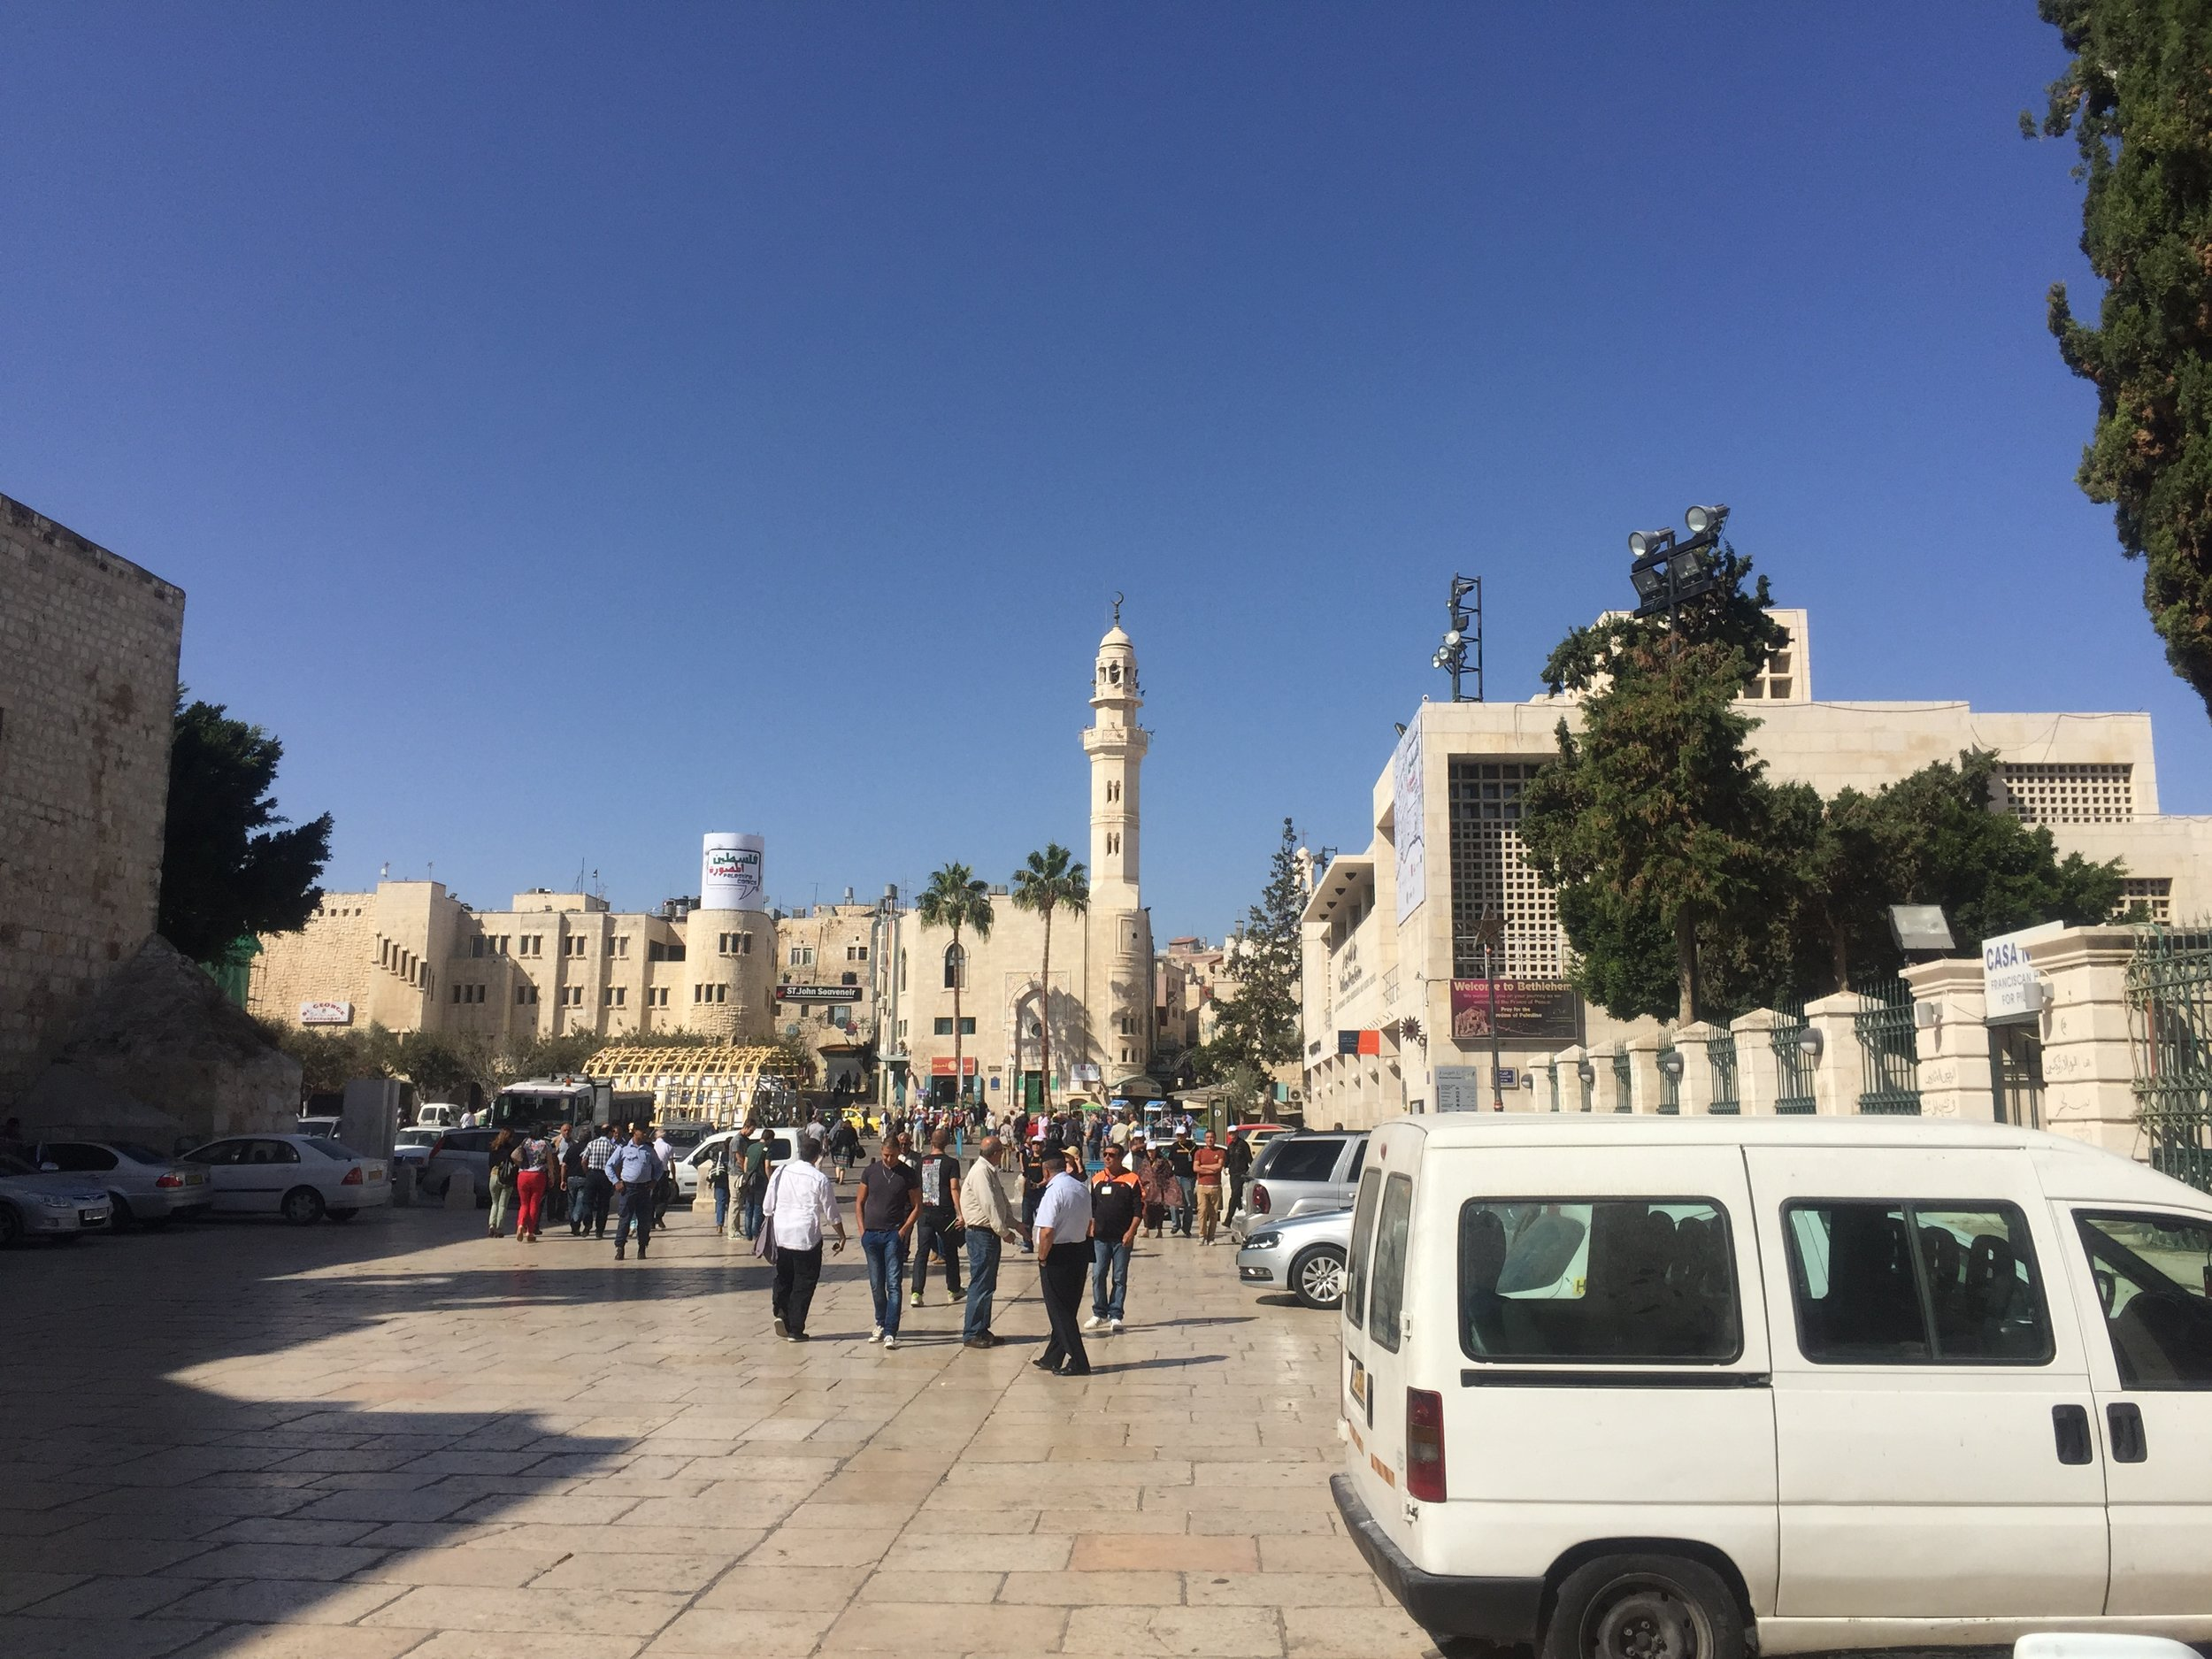 The Birthplace of Jesus is surrounded by Mosques